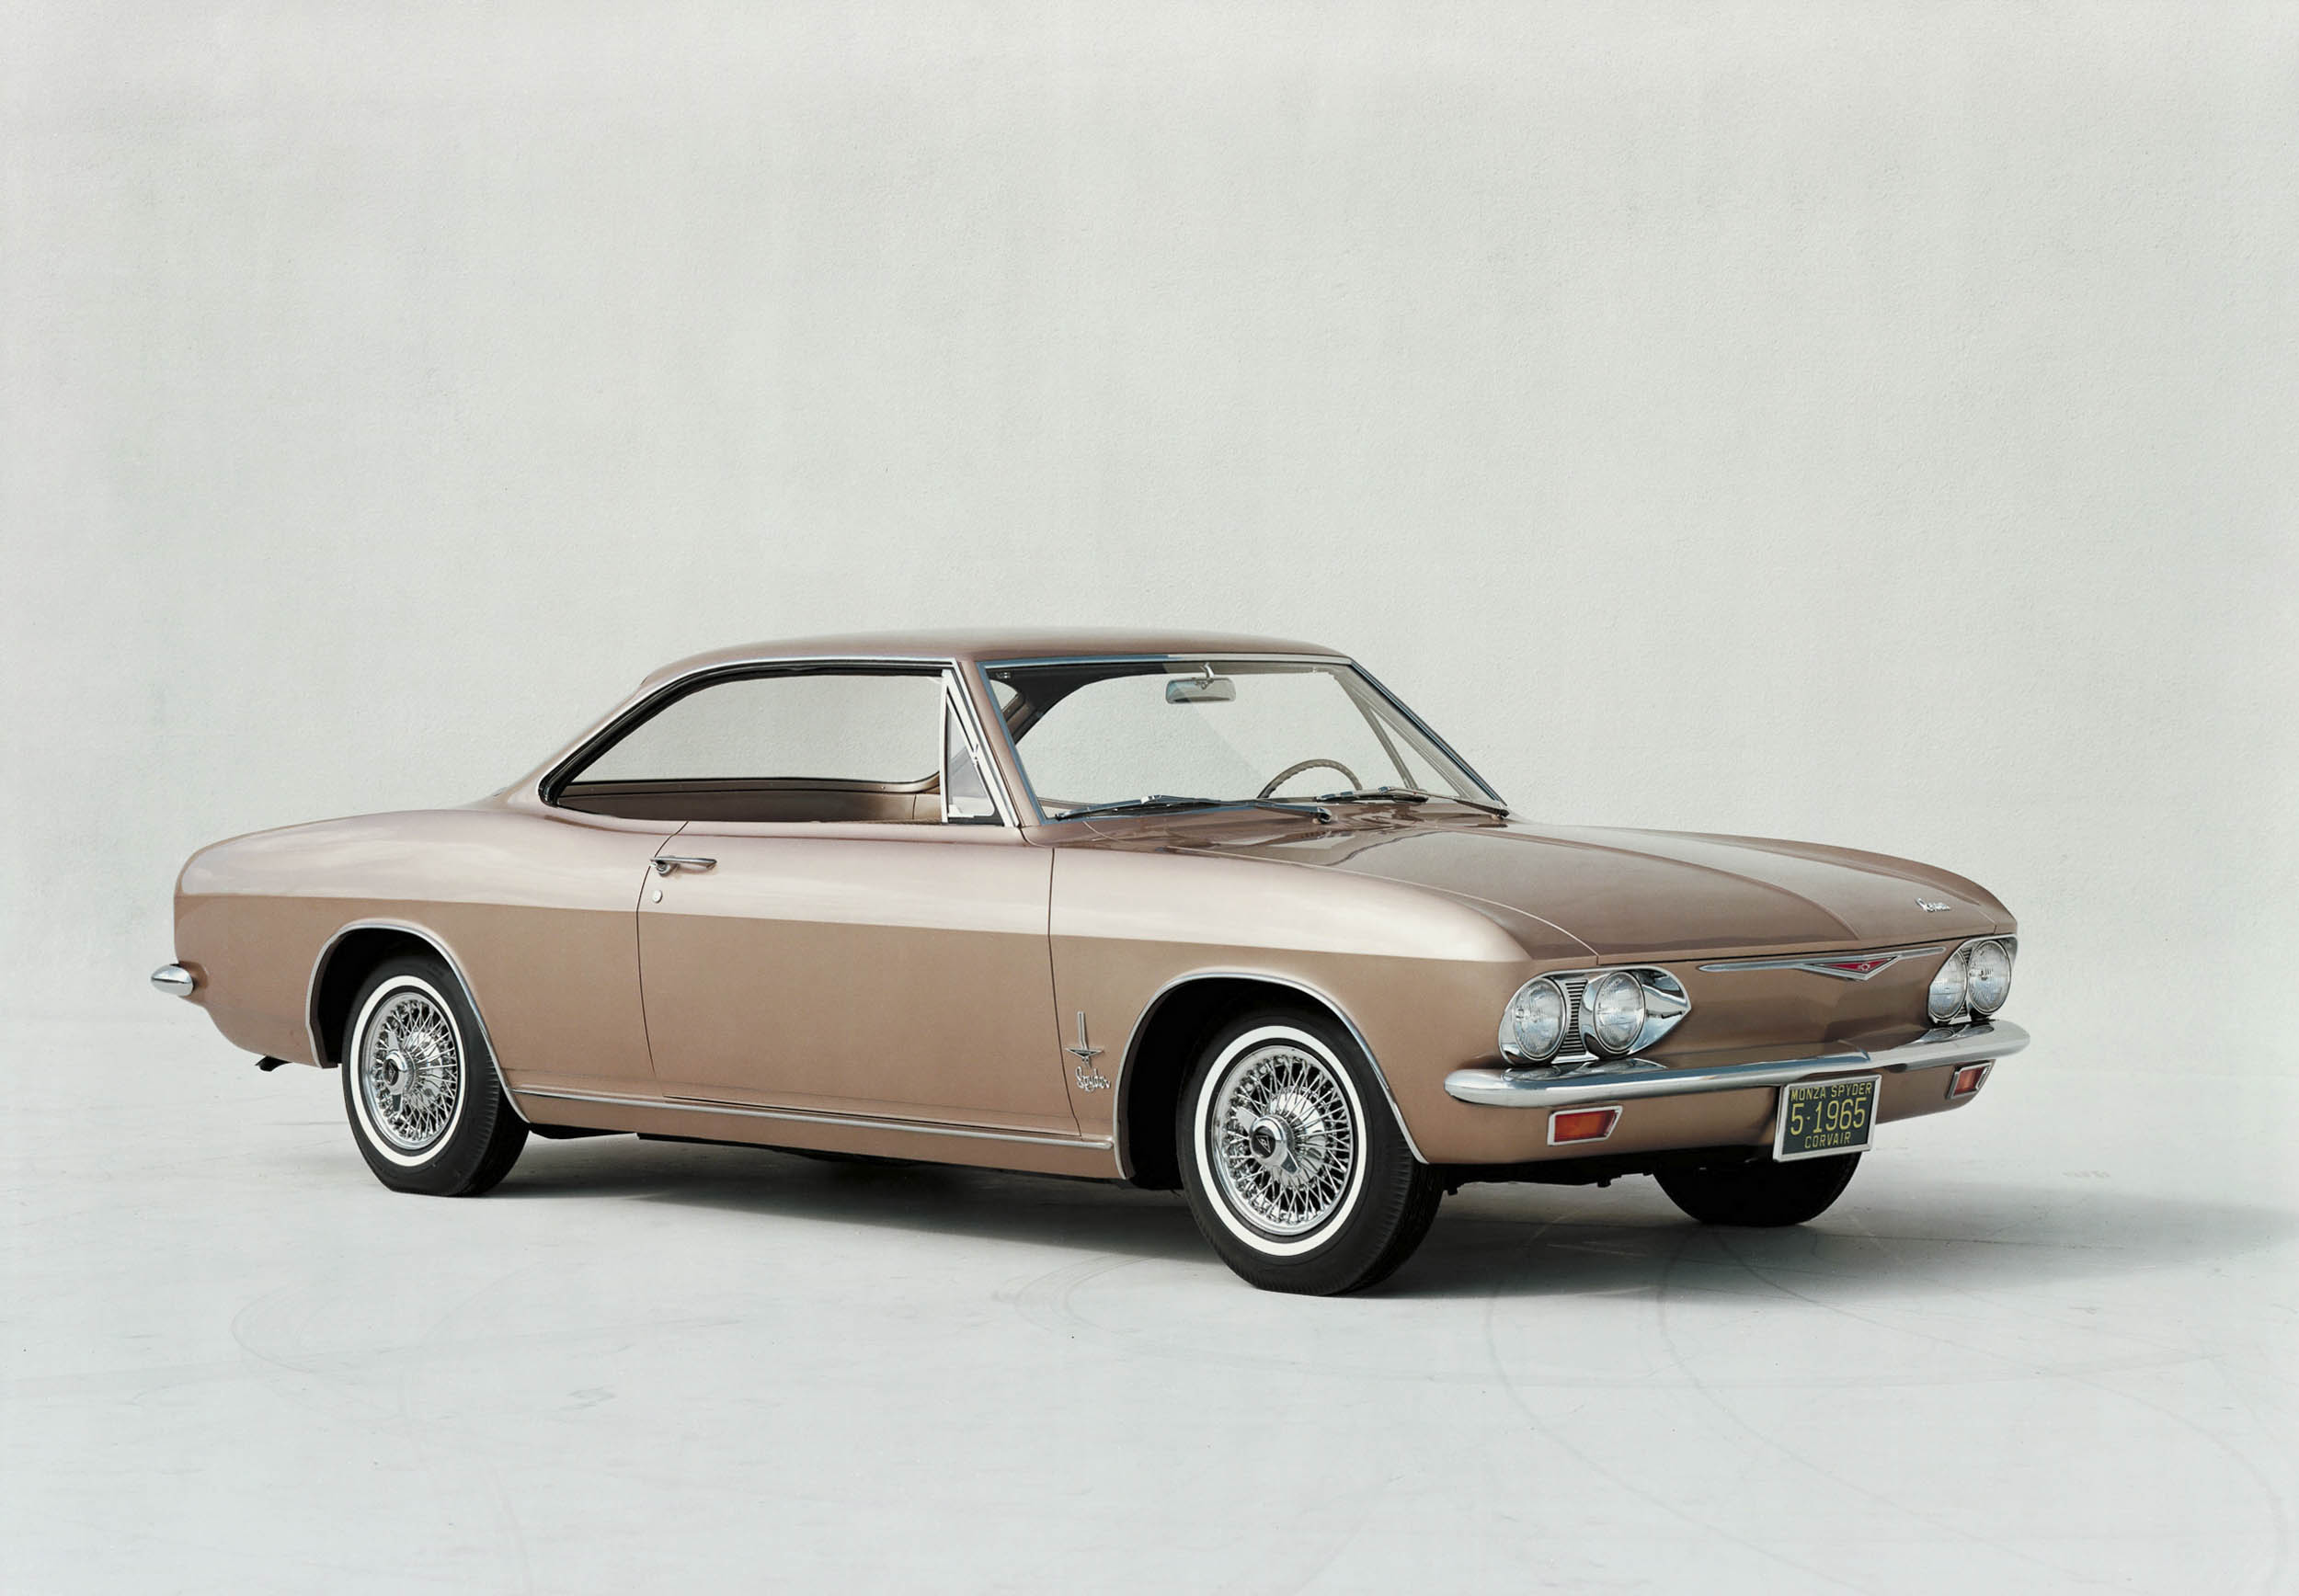 1965 Corvair Monza Spyder coupe